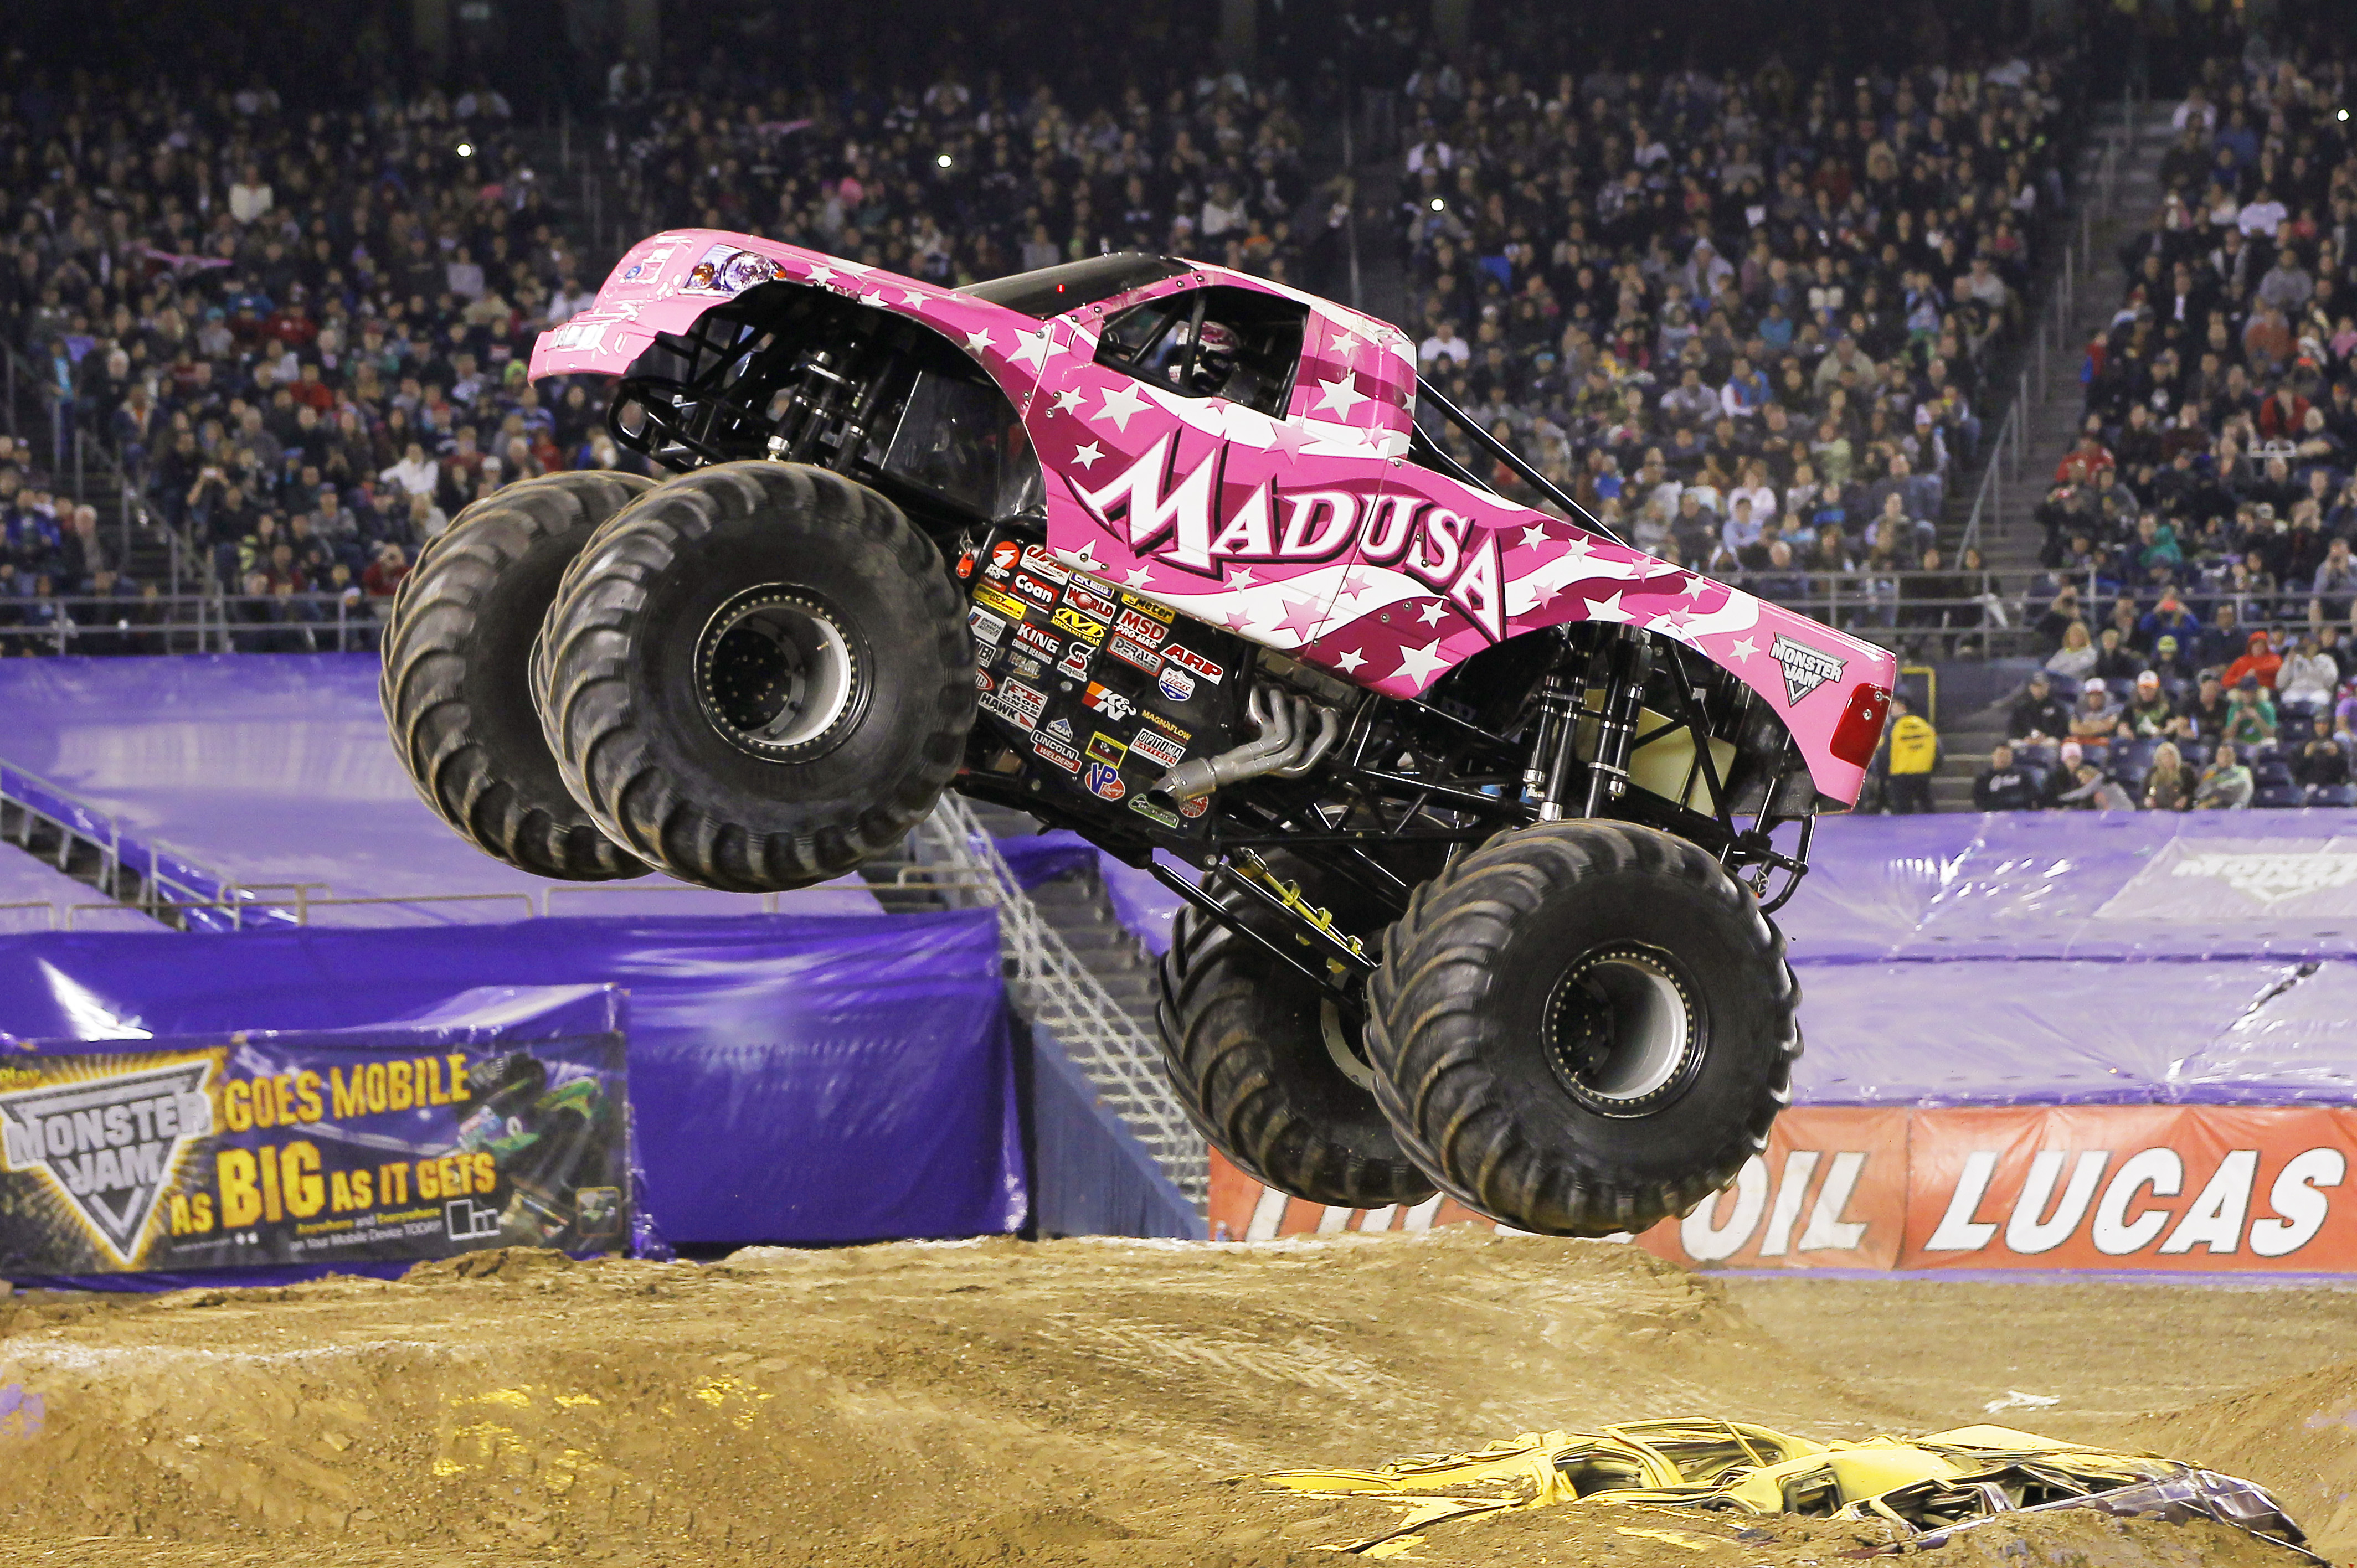 Pink Monster Truck Png Free Pink Monster Truck Png Transparent Images 146970 Pngio